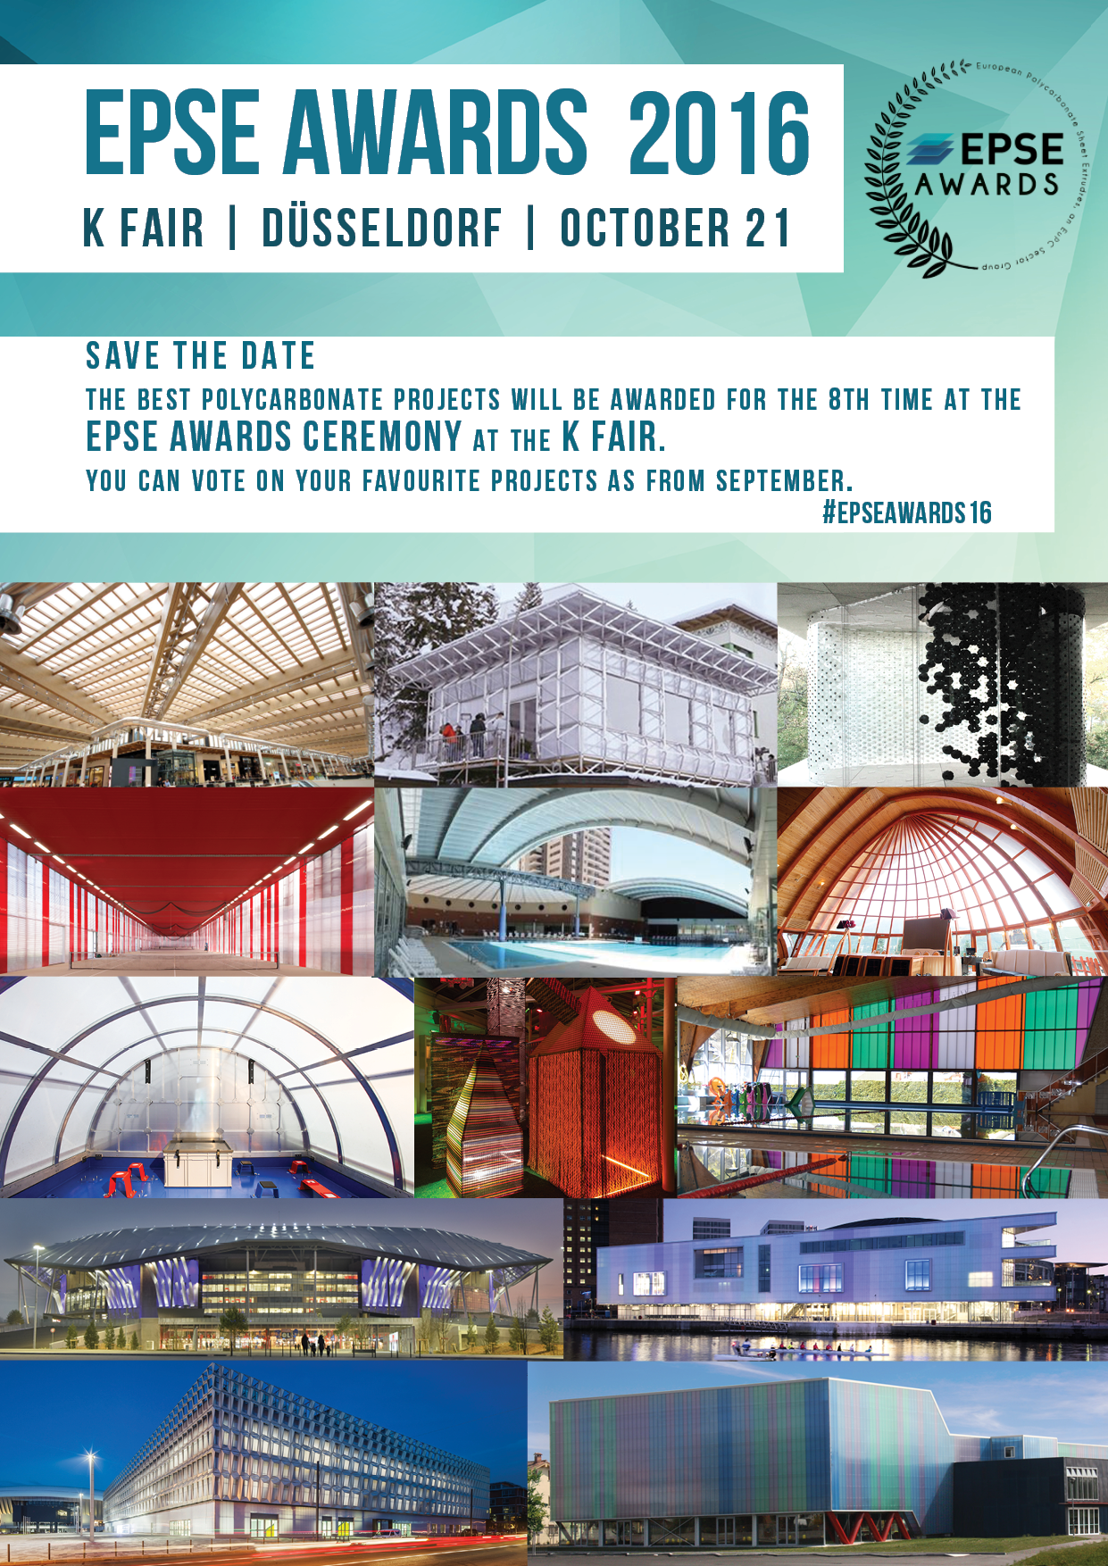 EPSE AWARDS CEREMONY 2016 | 21 October | K Fair Duesseldorf